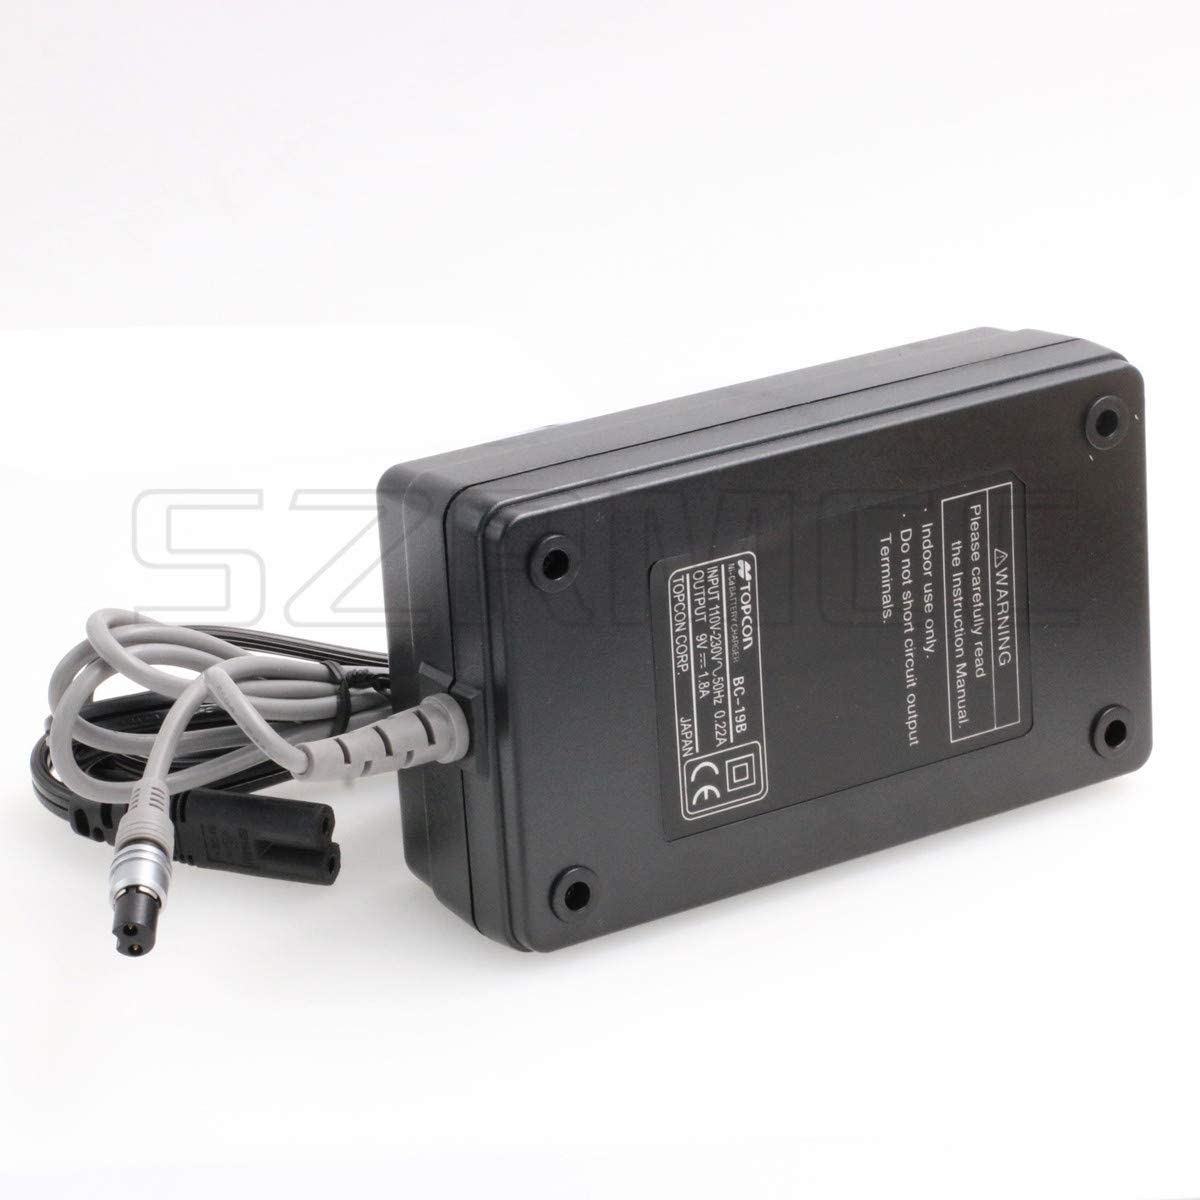 SZRMCC Topcon BC-19B Battery Charger for topcon BT-32Q Battery,Topcon GTS-200 GTS-210 GPT-1003 Total Station